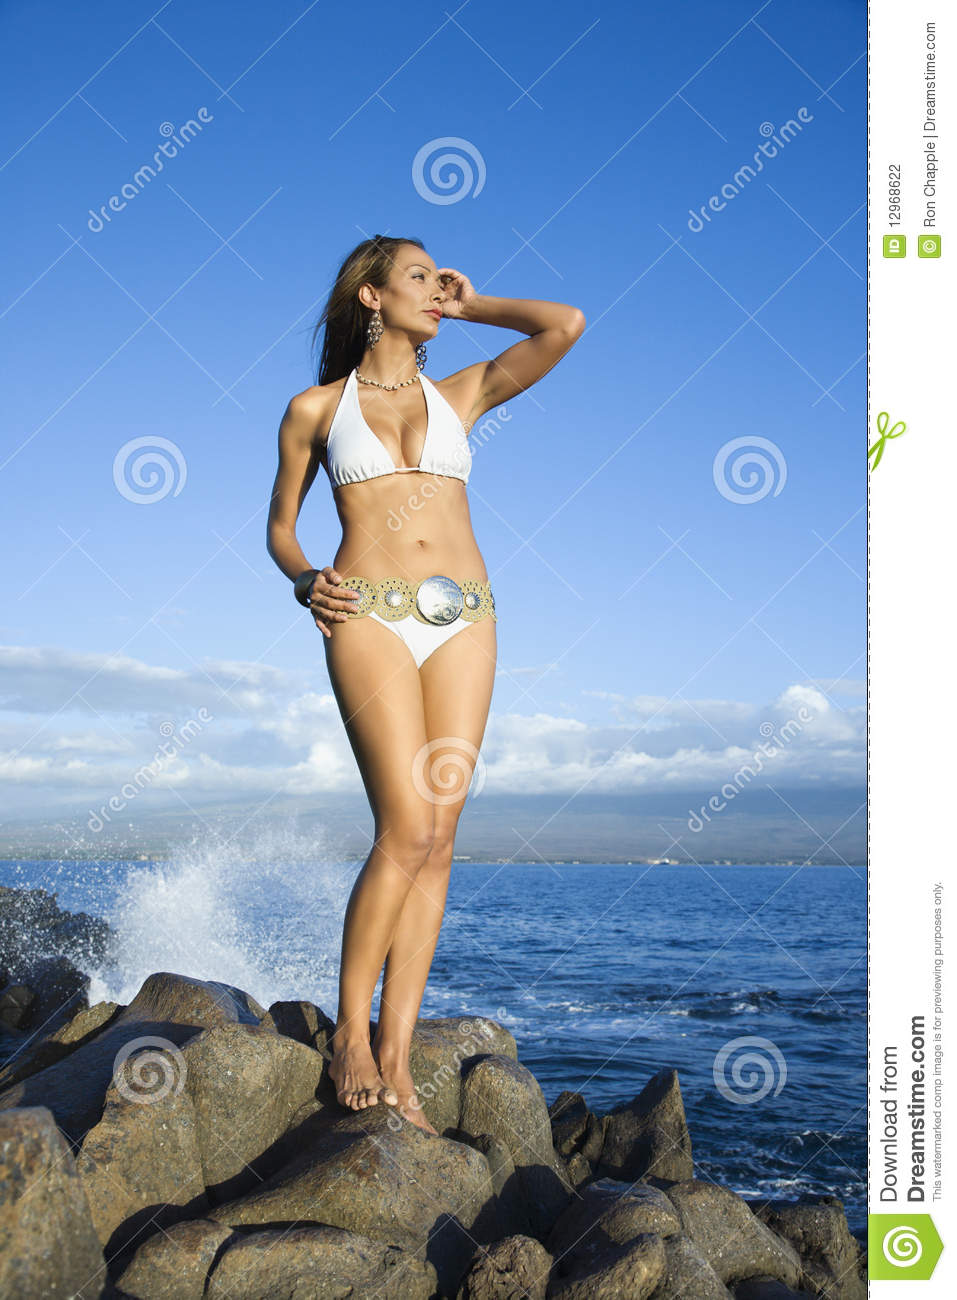 Woman In Swimsuit Standing On Beach Stock Photography